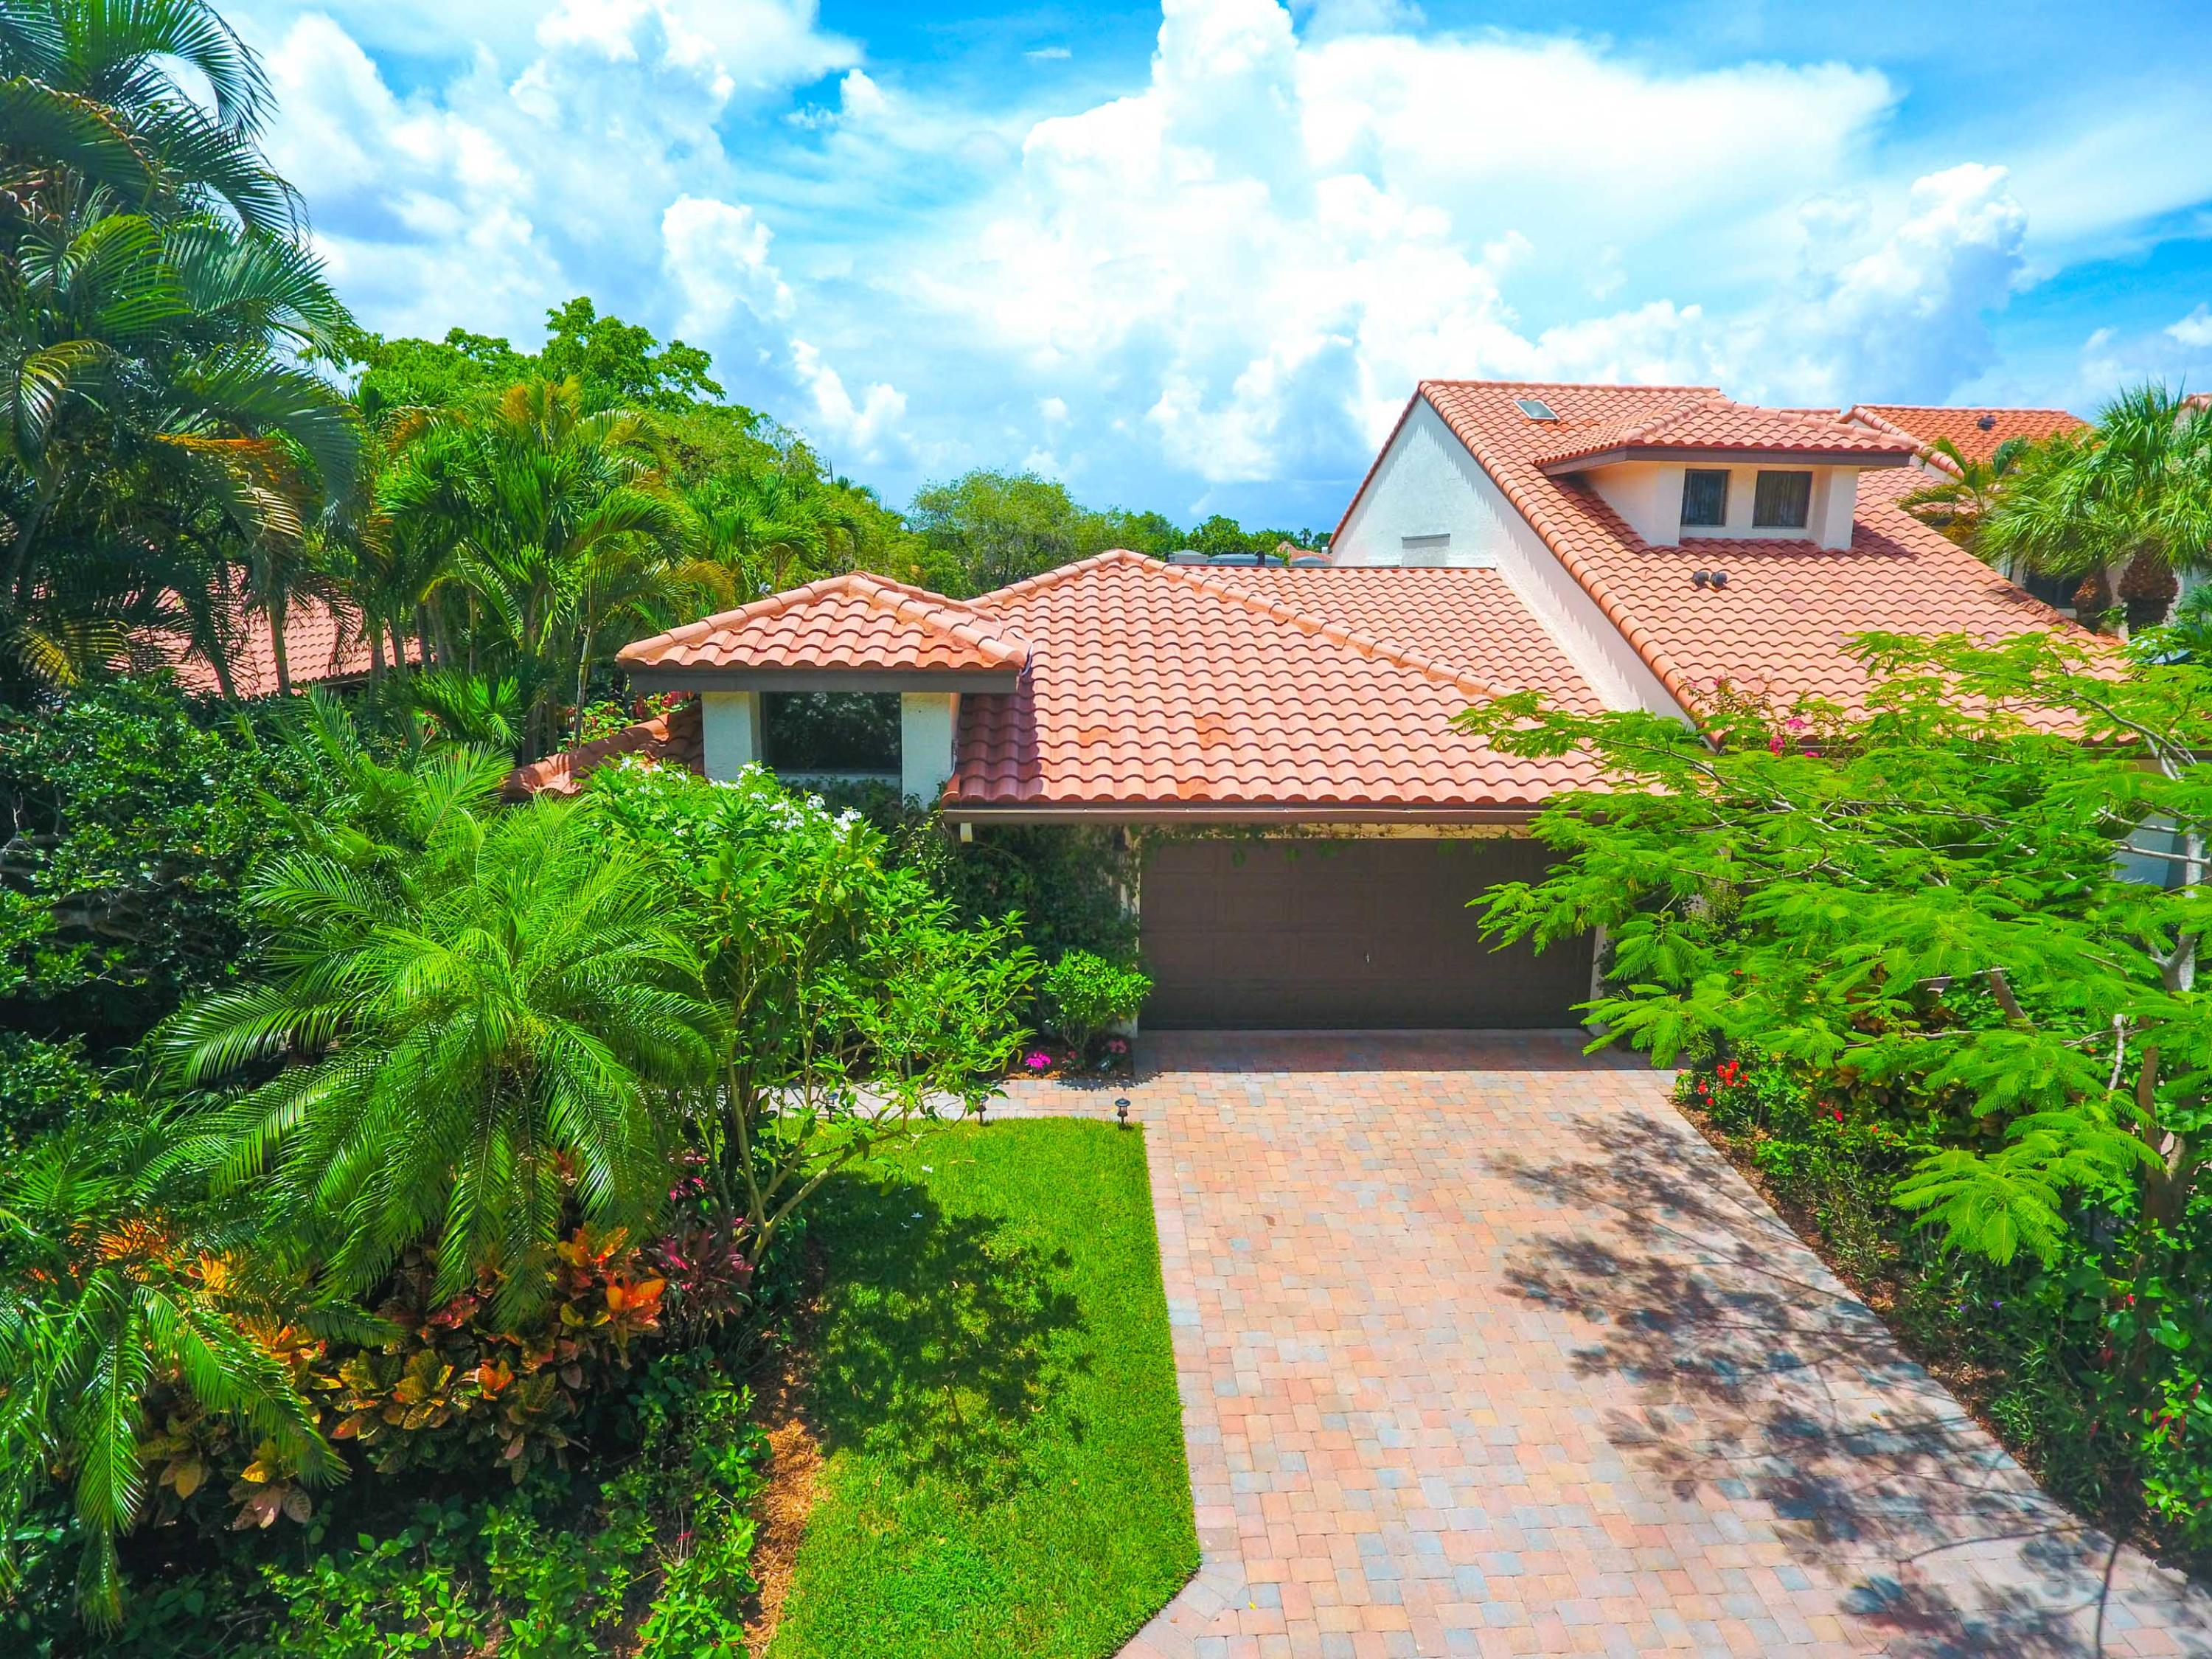 2387 Windsor Way Court, Wellington, Florida 33414, 3 Bedrooms Bedrooms, ,3 BathroomsBathrooms,Villa,For Rent,Palm Beach Polo and Country Club,Windsor Way,1,RX-10618198